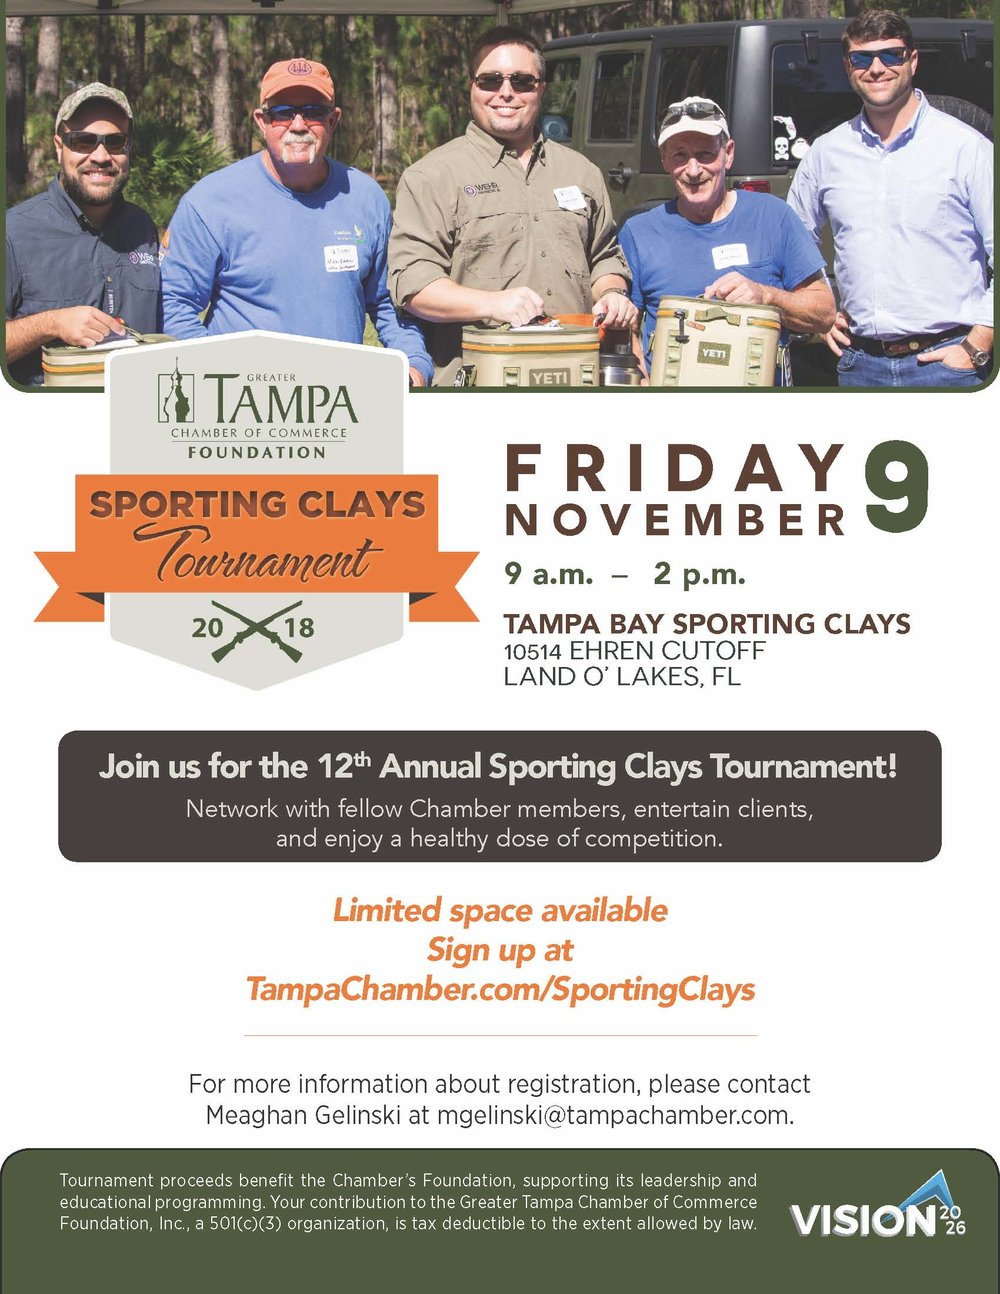 Sporting Clays 2018 Flyer.jpg